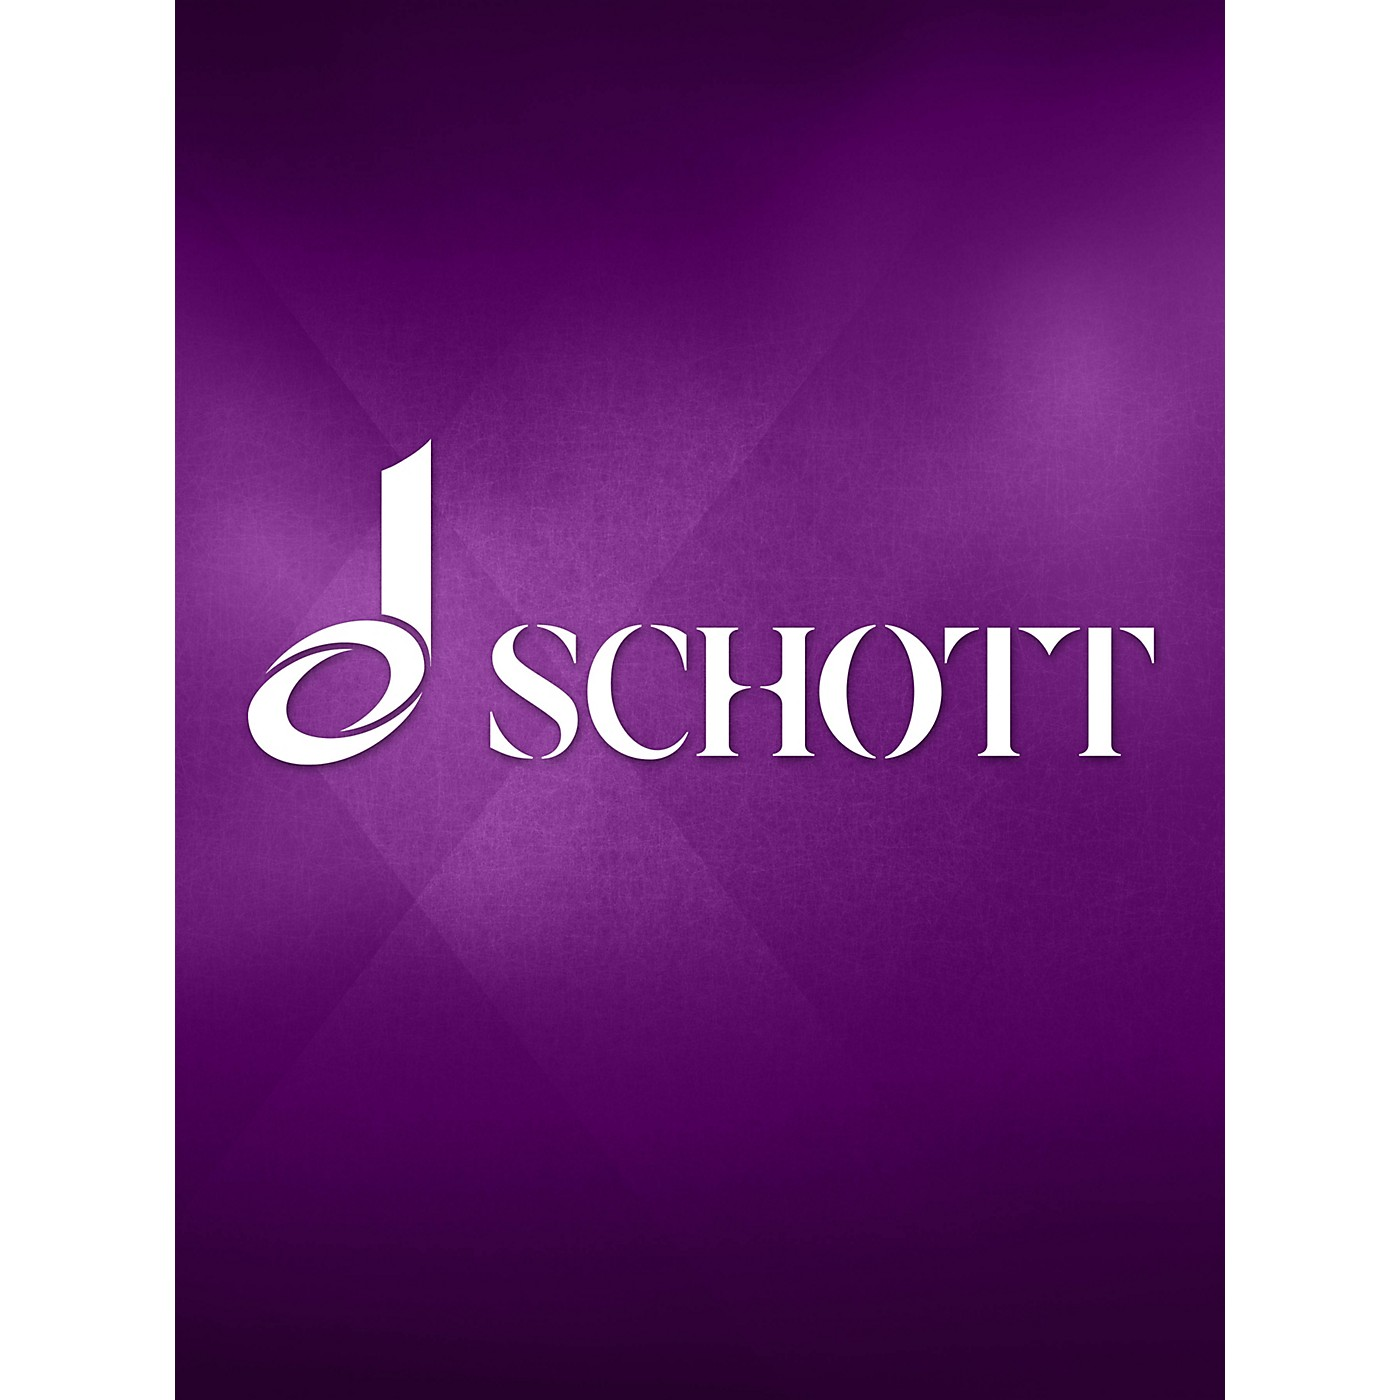 Schott 3 Songs of Charles d'Orleáns Composed by Claude Debussy thumbnail